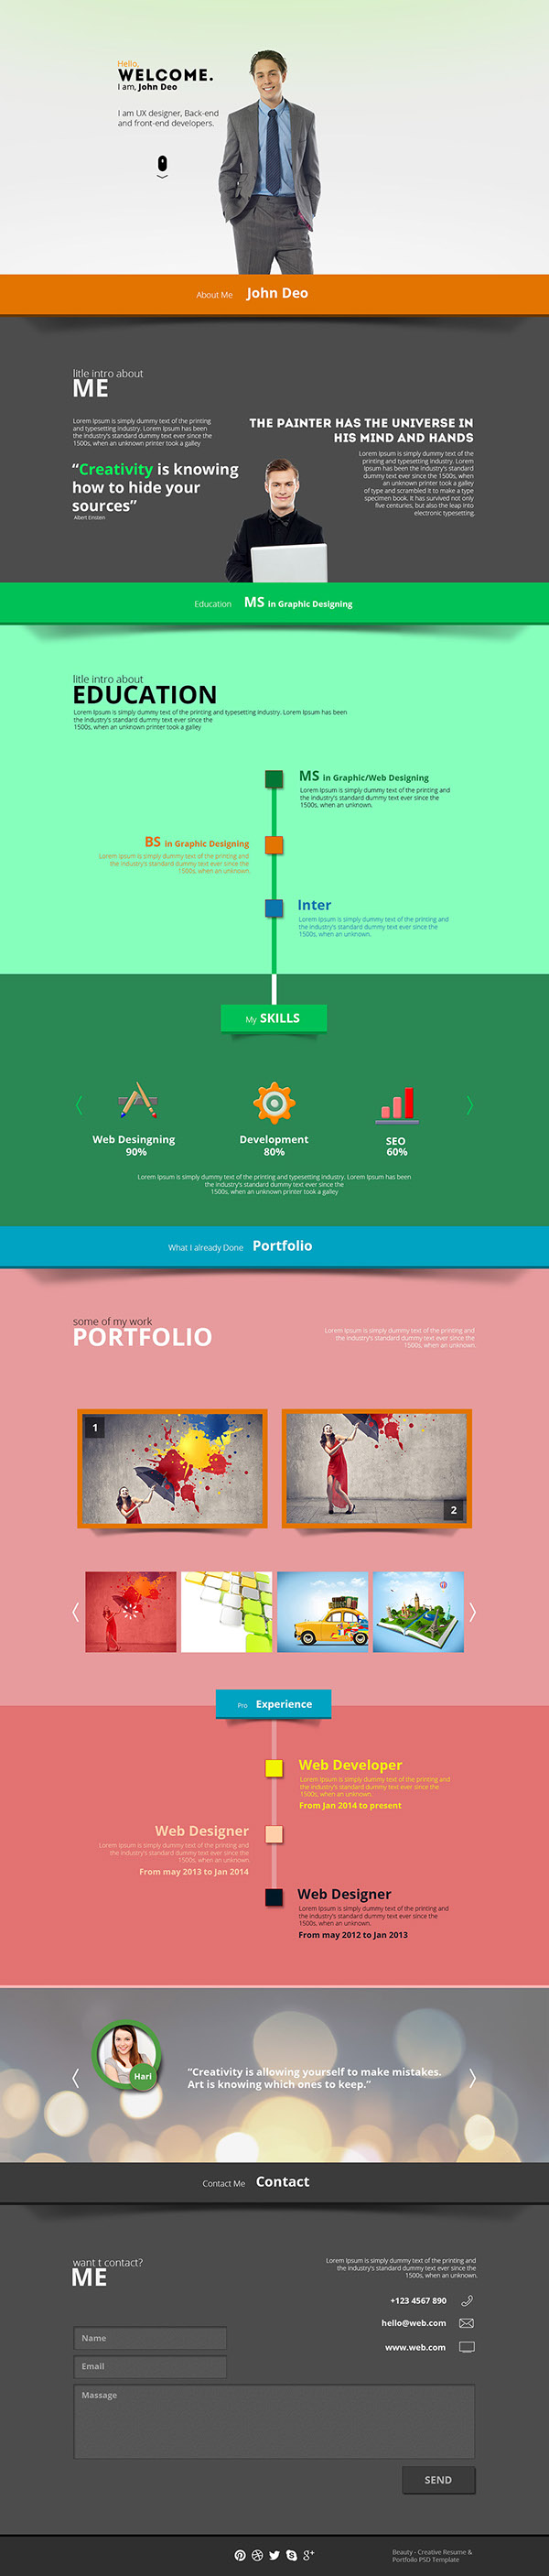 beauty creative resume portfolio psd template on behance